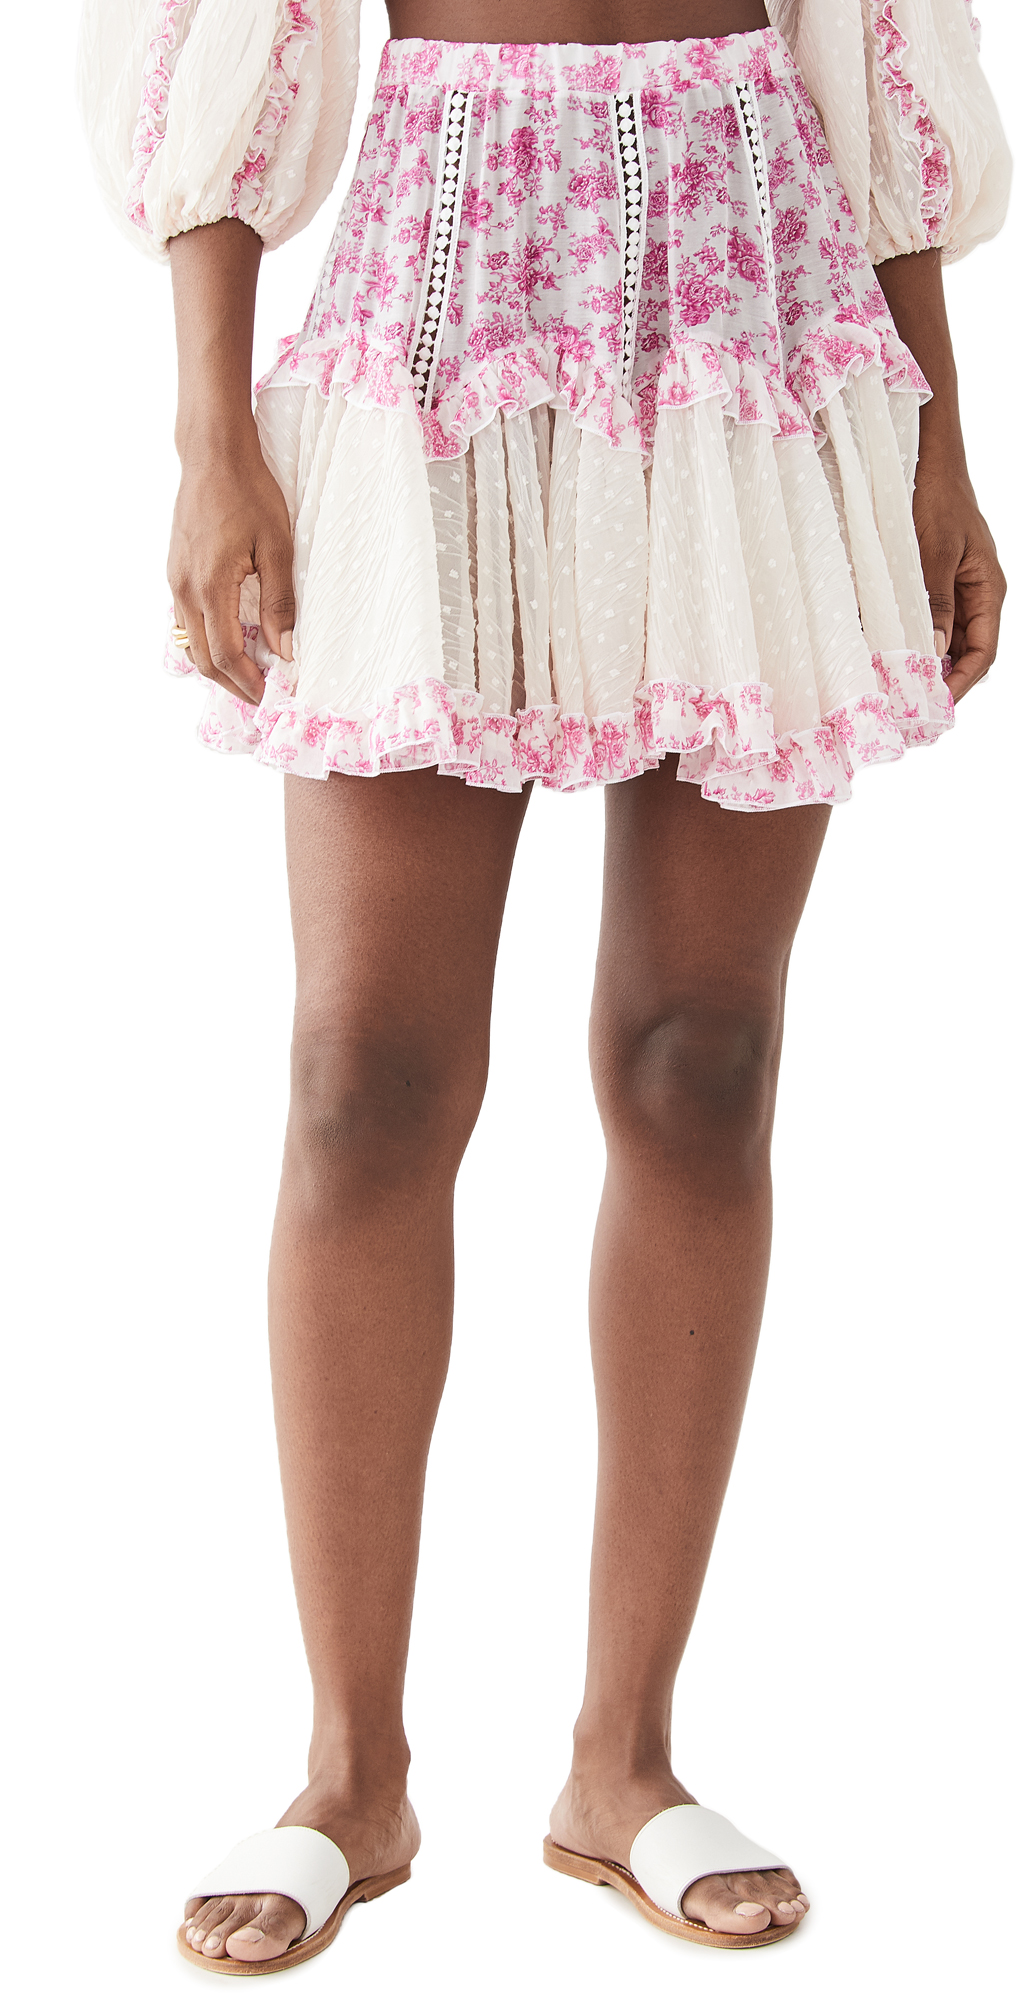 CHIO Floral Frill Short Skirt